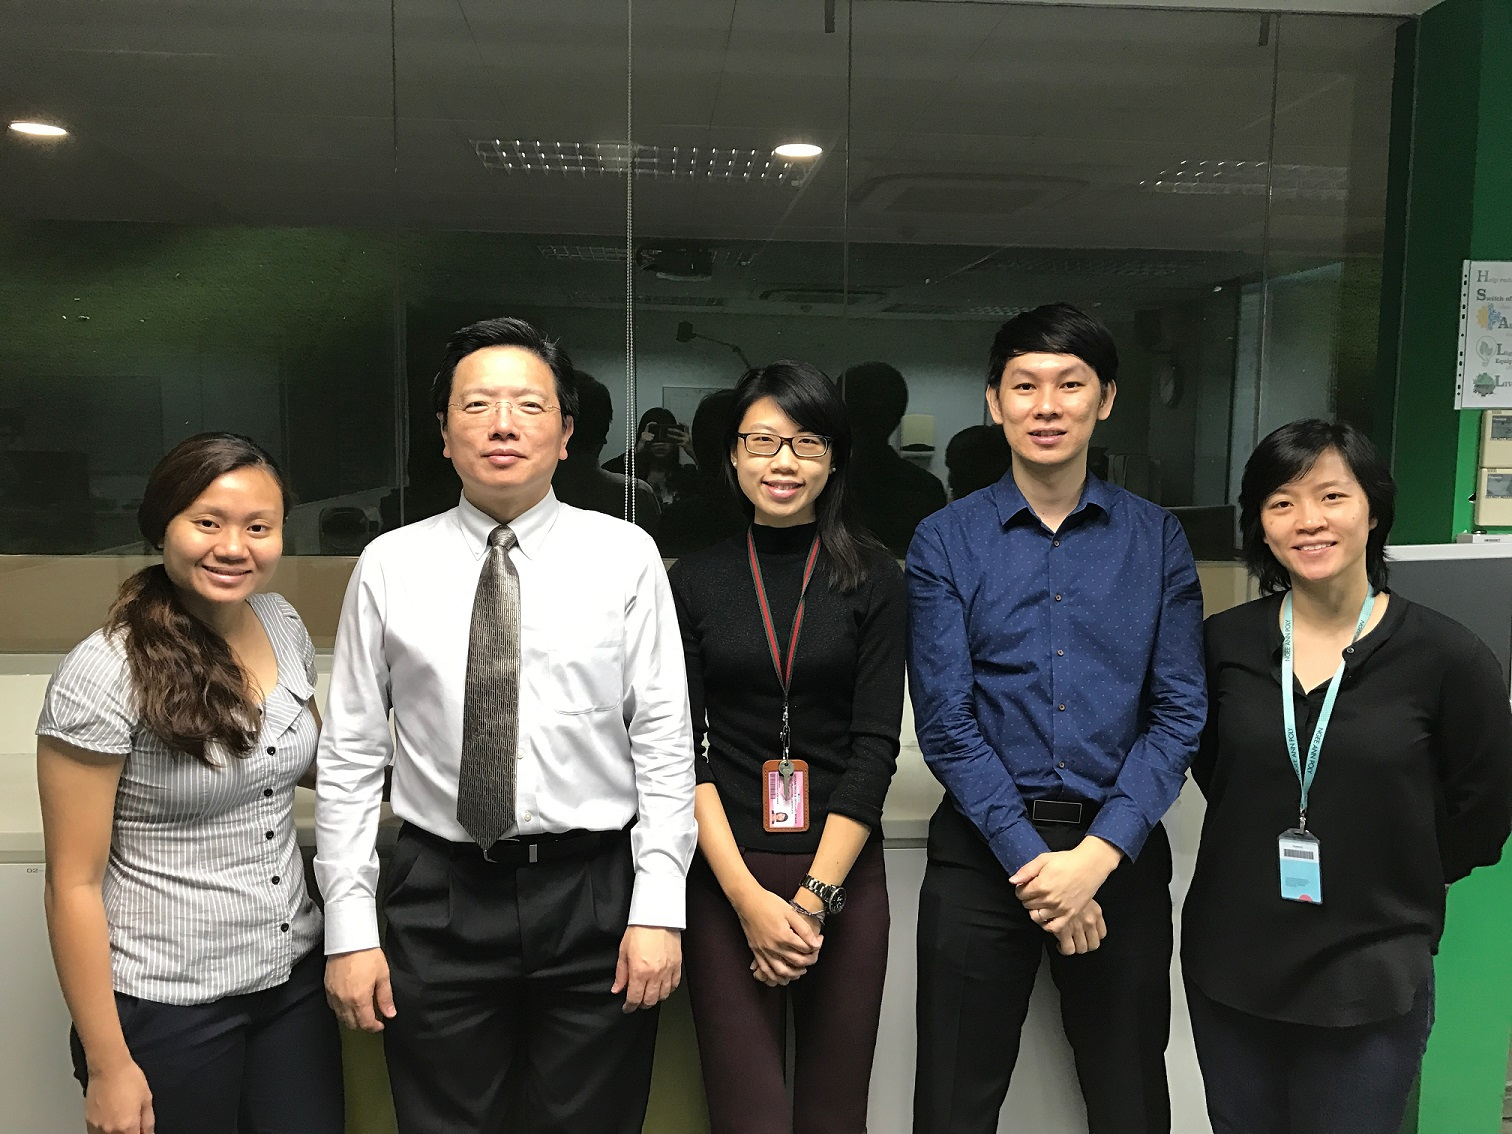 Dr Au Eong Kah Guan (second from L) with Ngee Ann Polytechnic Lecturers (L-R) Ms Jessica Yang Shan Mei, Ms Jessie Tan Sze Hui, Mr Ng Kay Yang and Dr Sharon Chua at Ngee Ann Polytechnic on 27 July 2017.